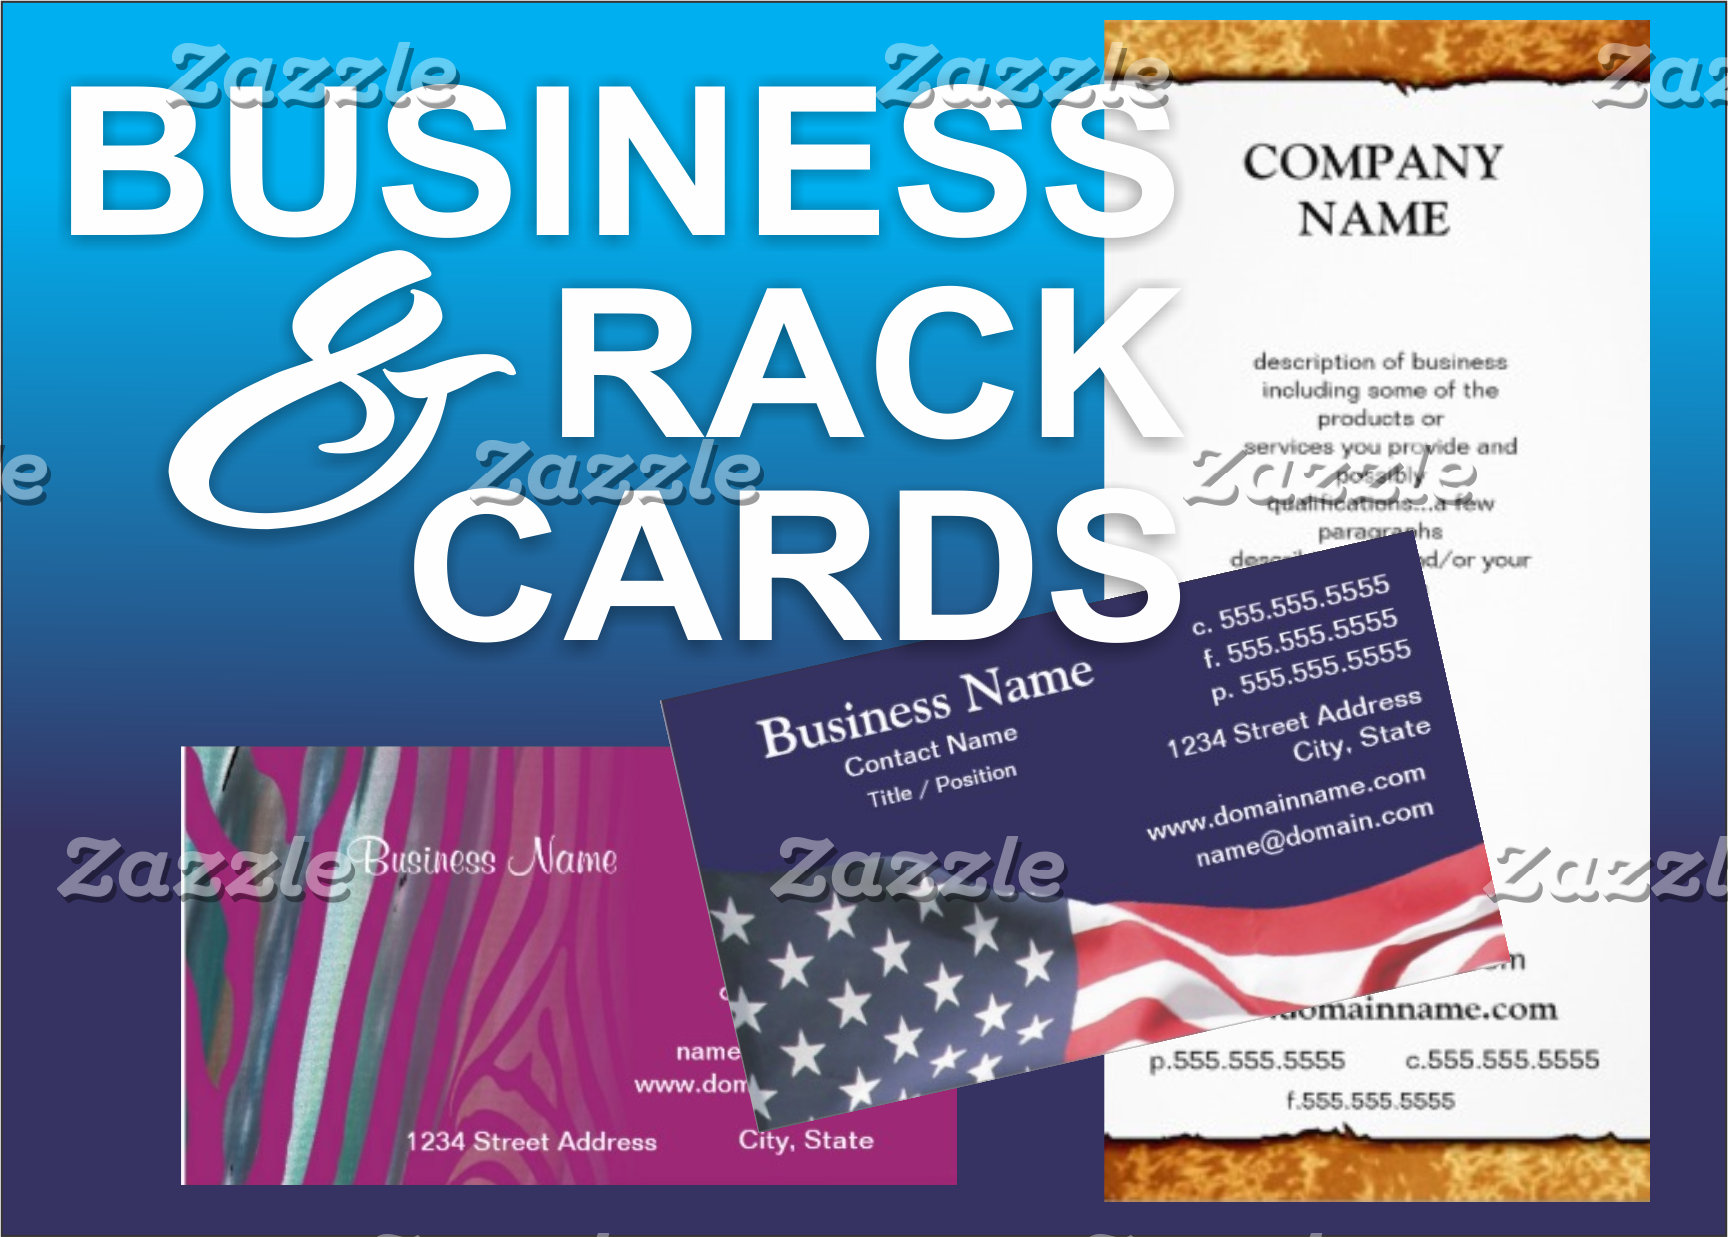 Business / Rack Cards